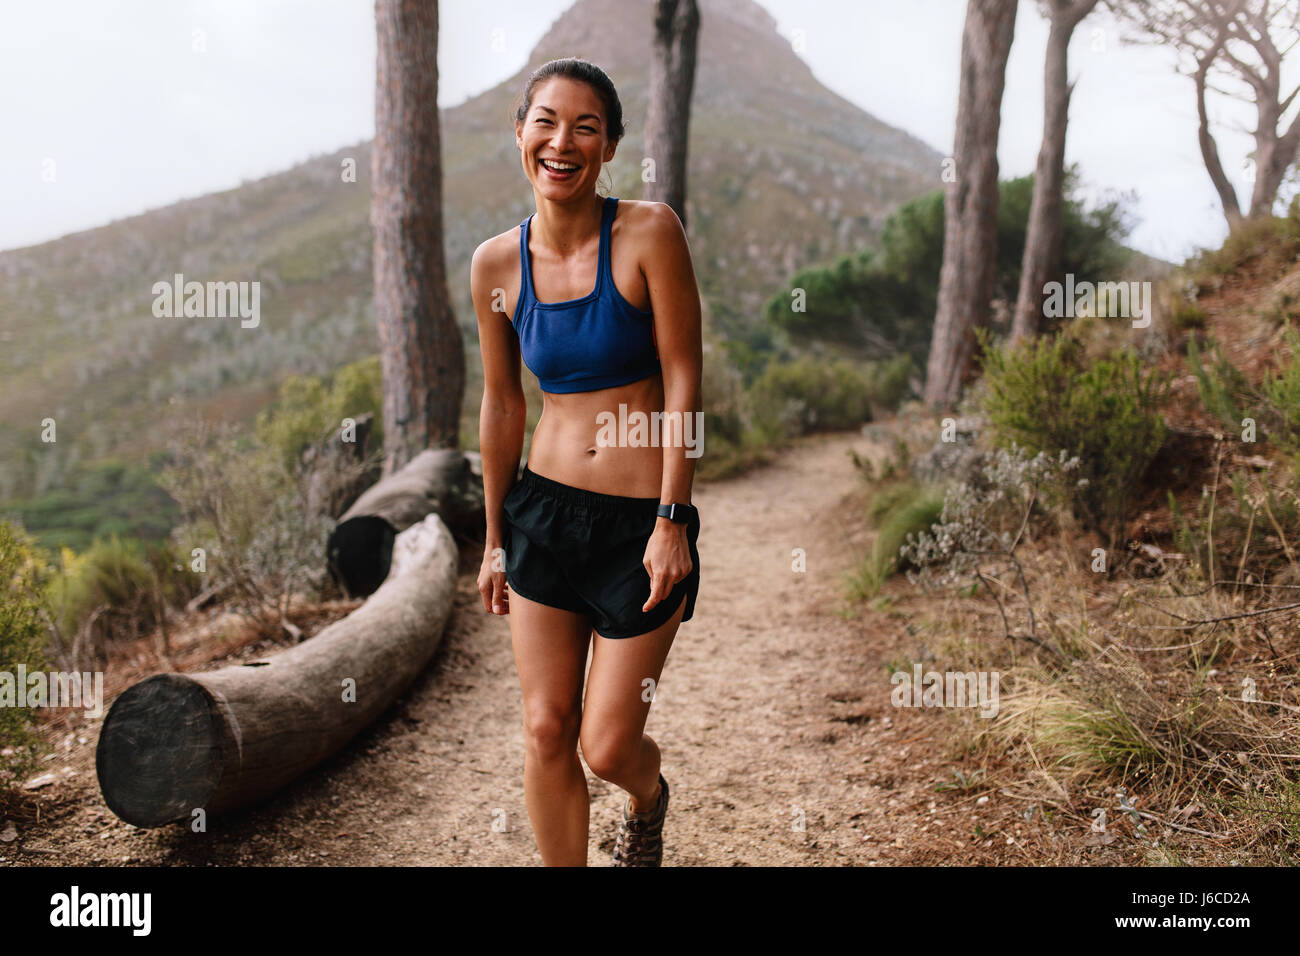 Shot of beautiful young asian woman standing on mountain trail and laughing. Healthy female runner in sportswear - Stock Image